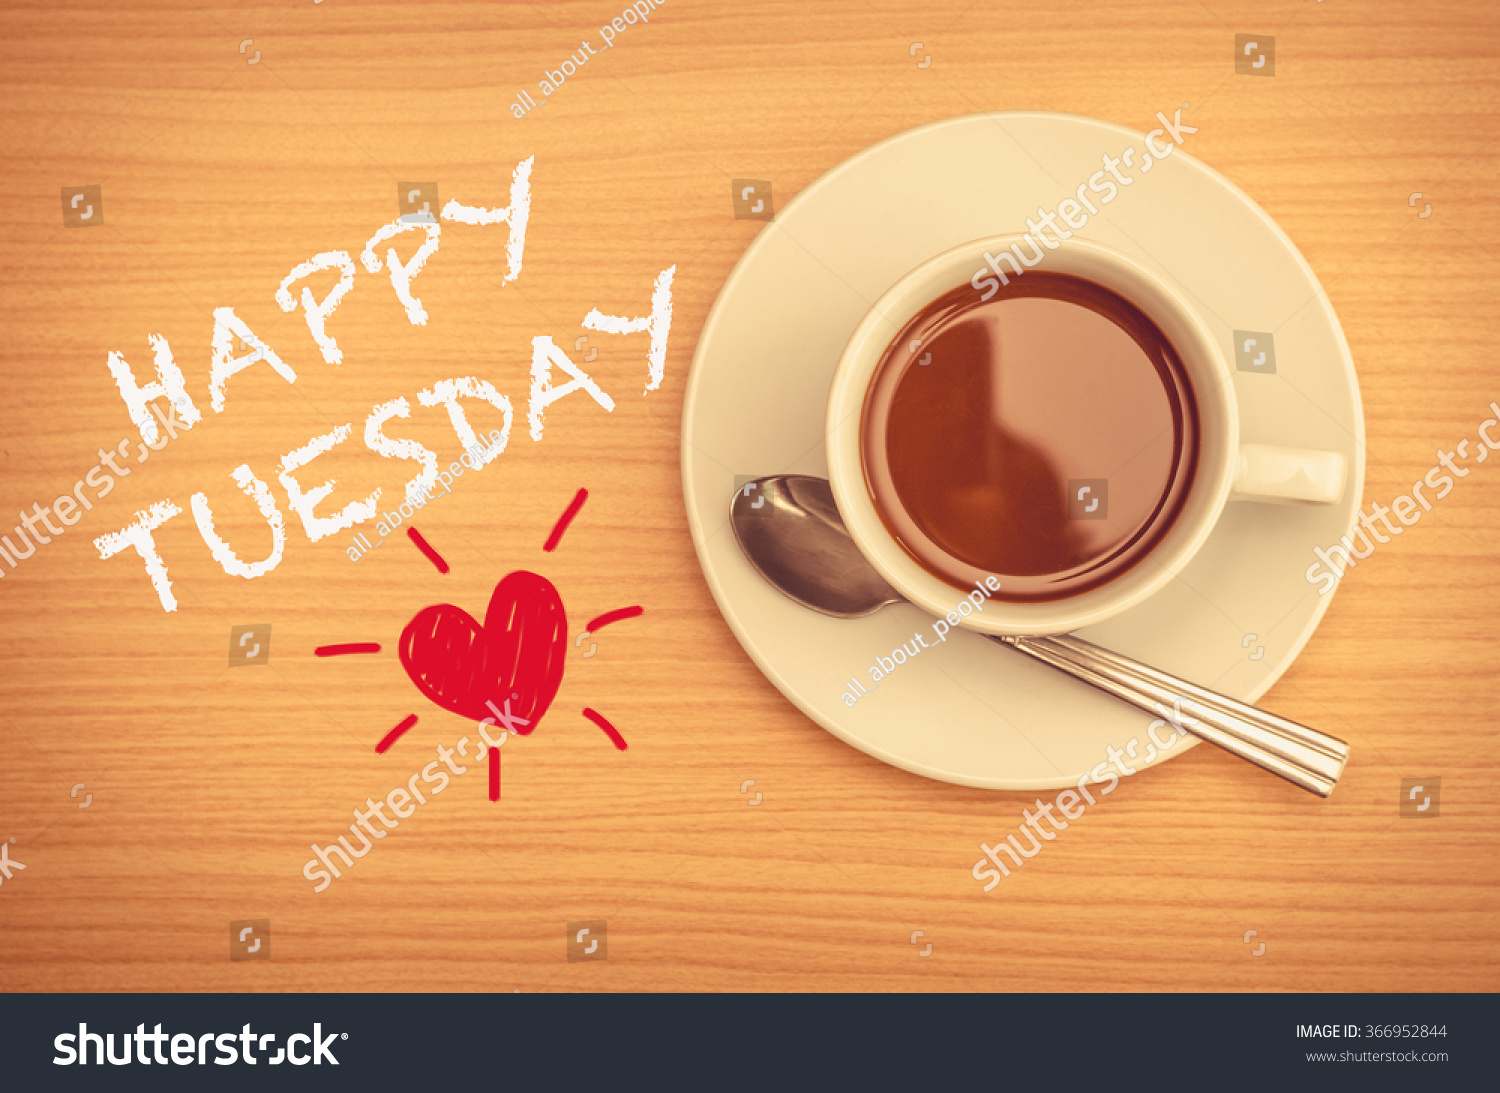 Happy Tuesday Coffee Cup On Table Stock Photo 366952844